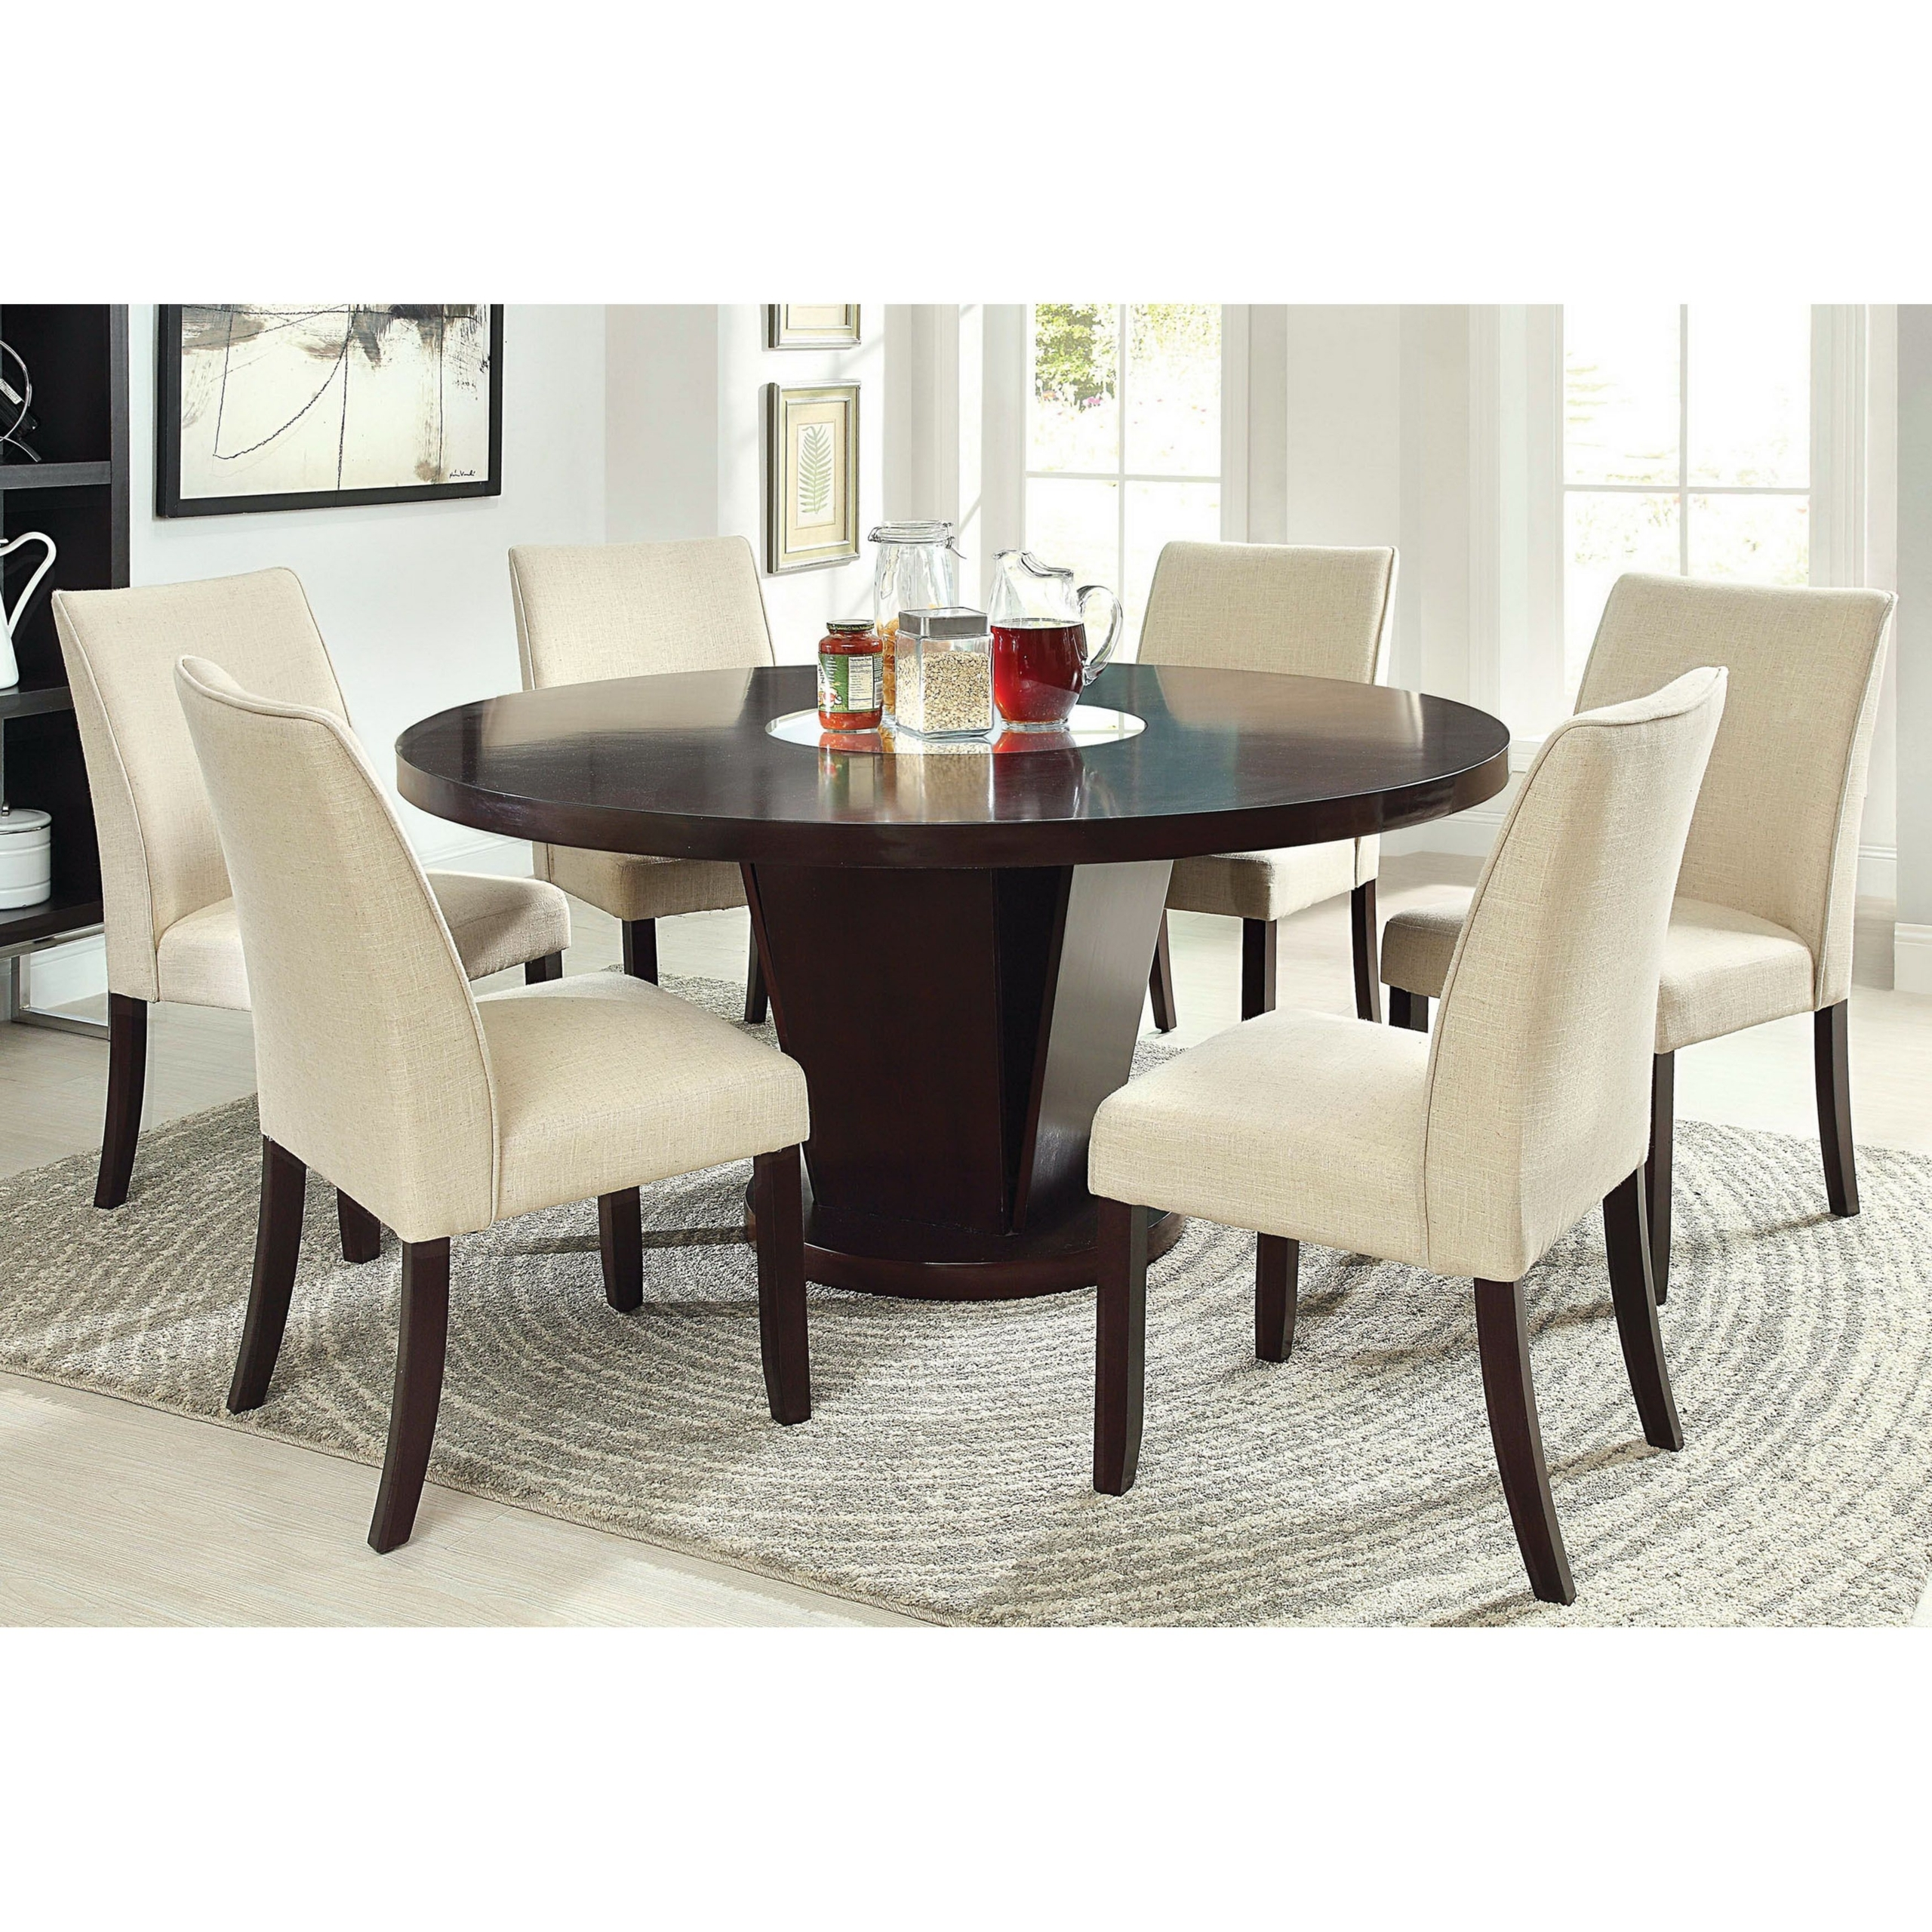 Dining Room Table Lazy Susan Ideas On Foter